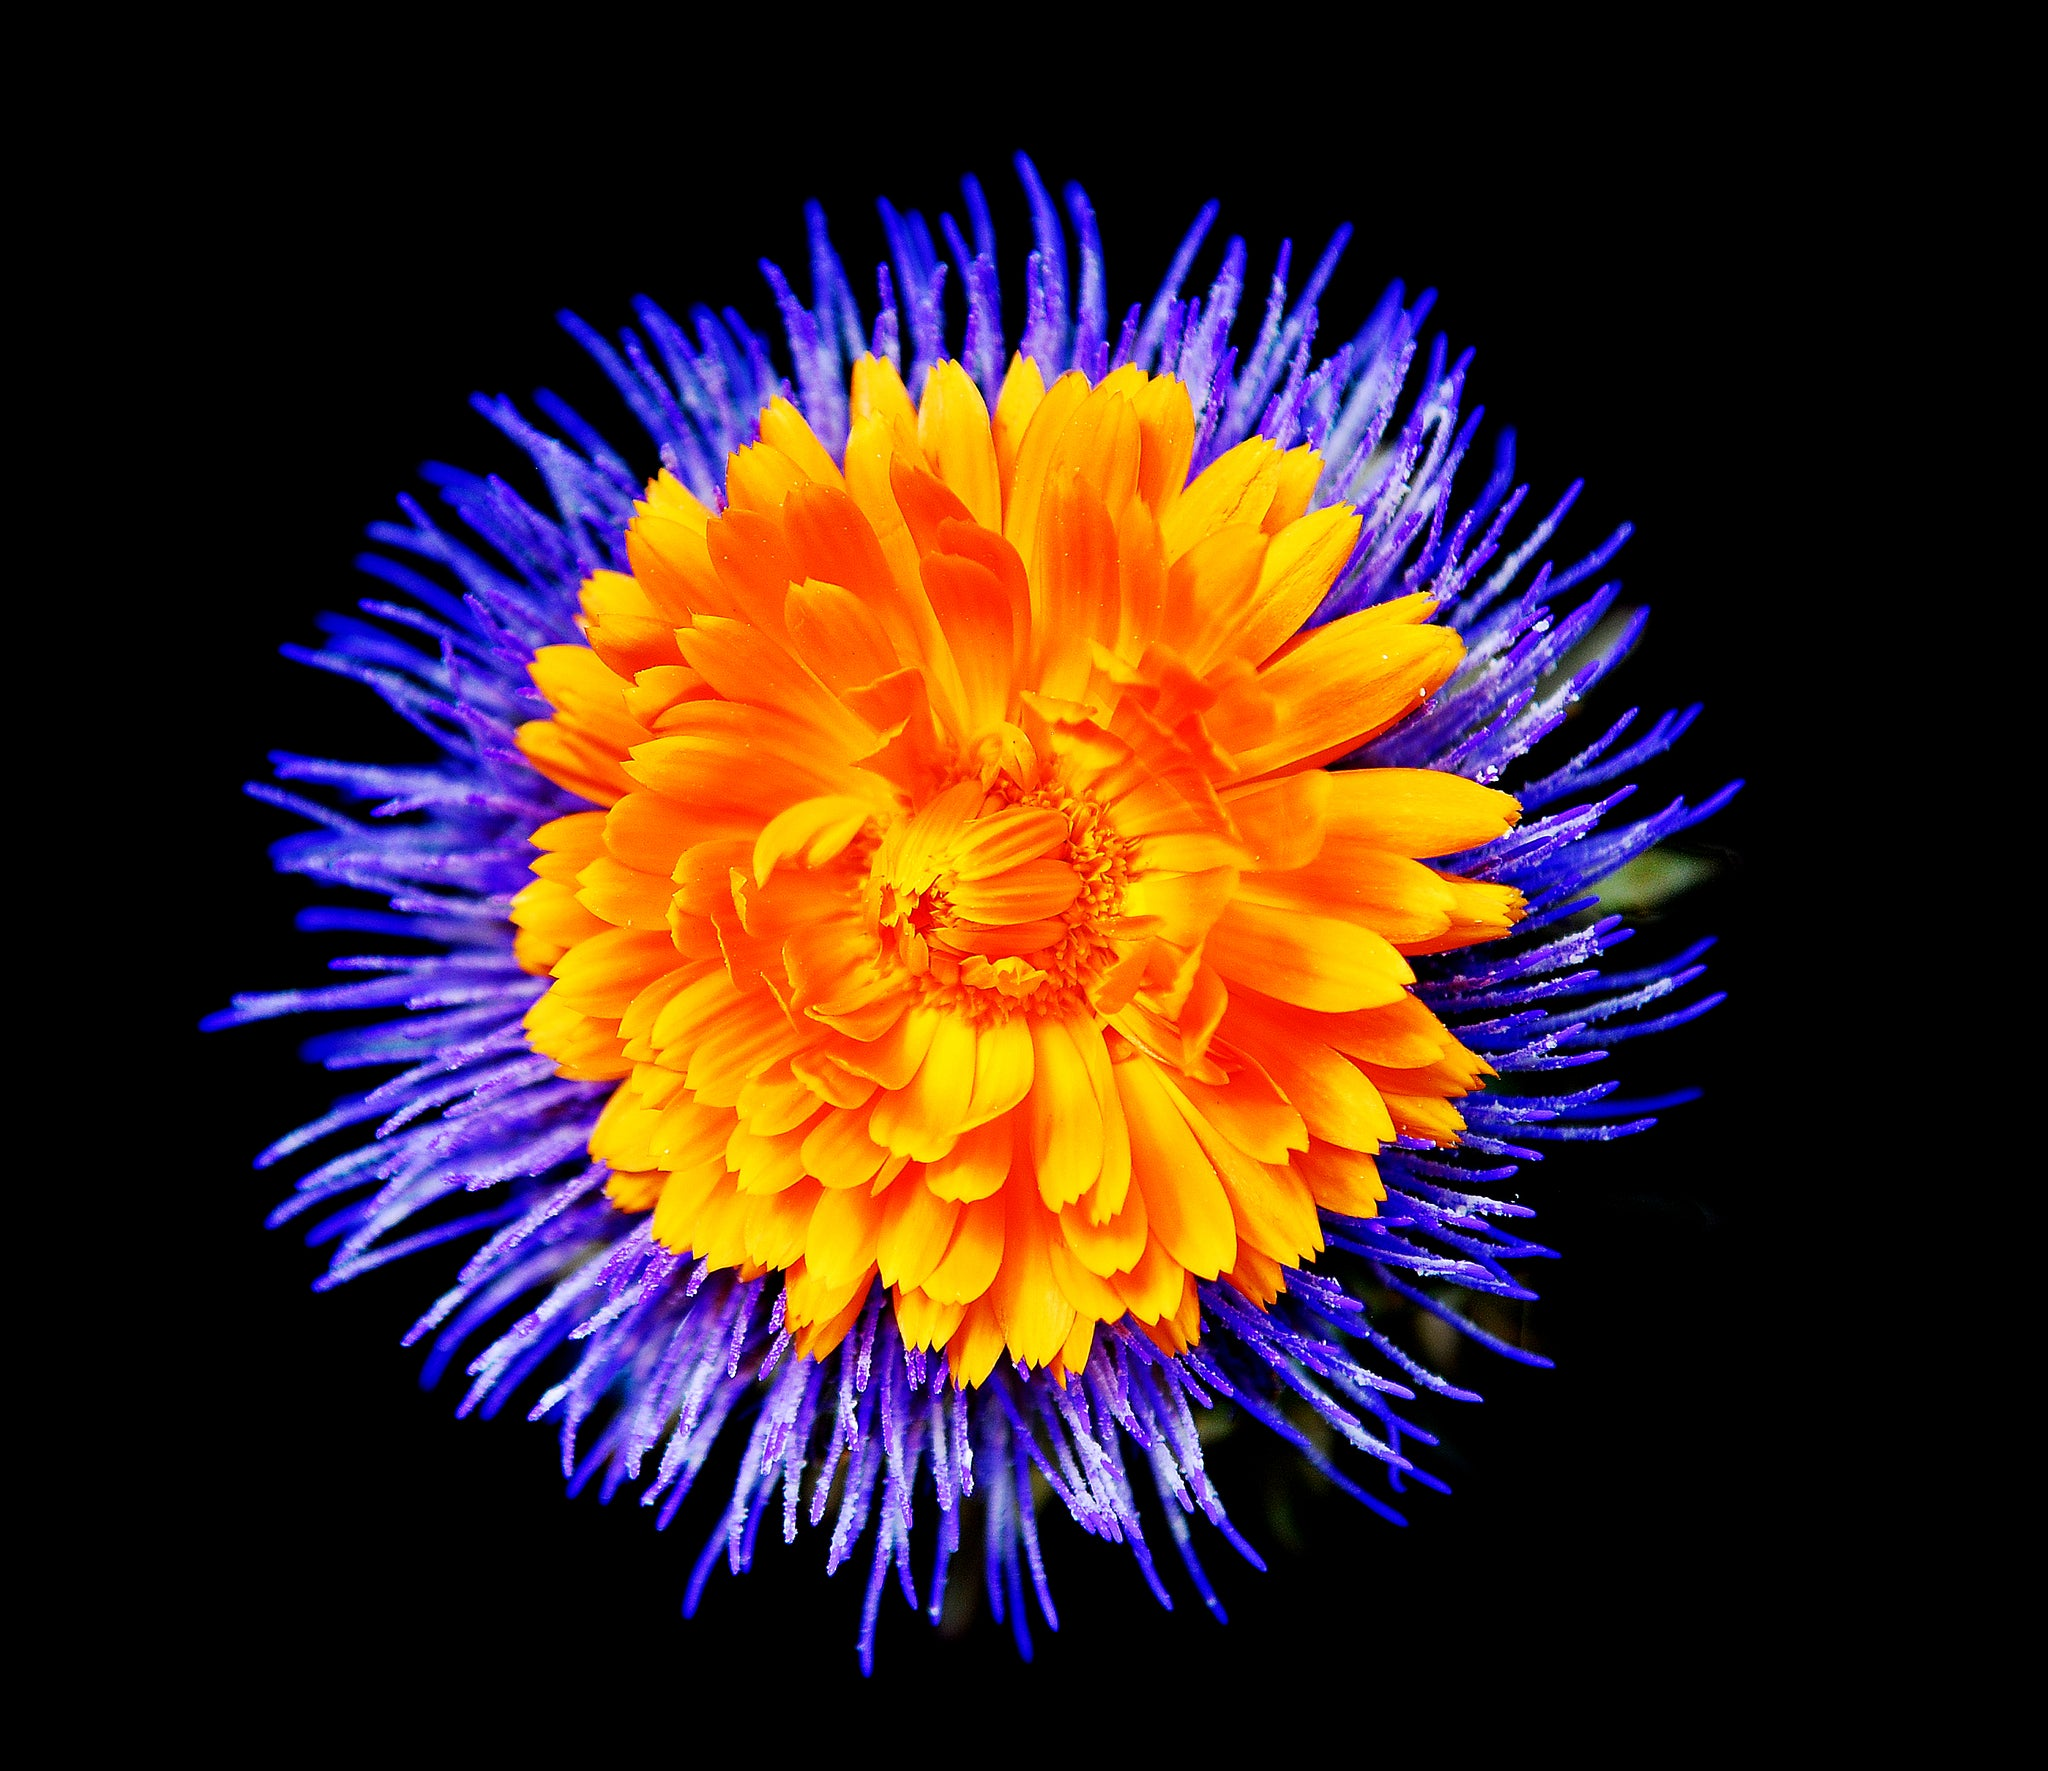 Artichoke Blue and Orange Flower